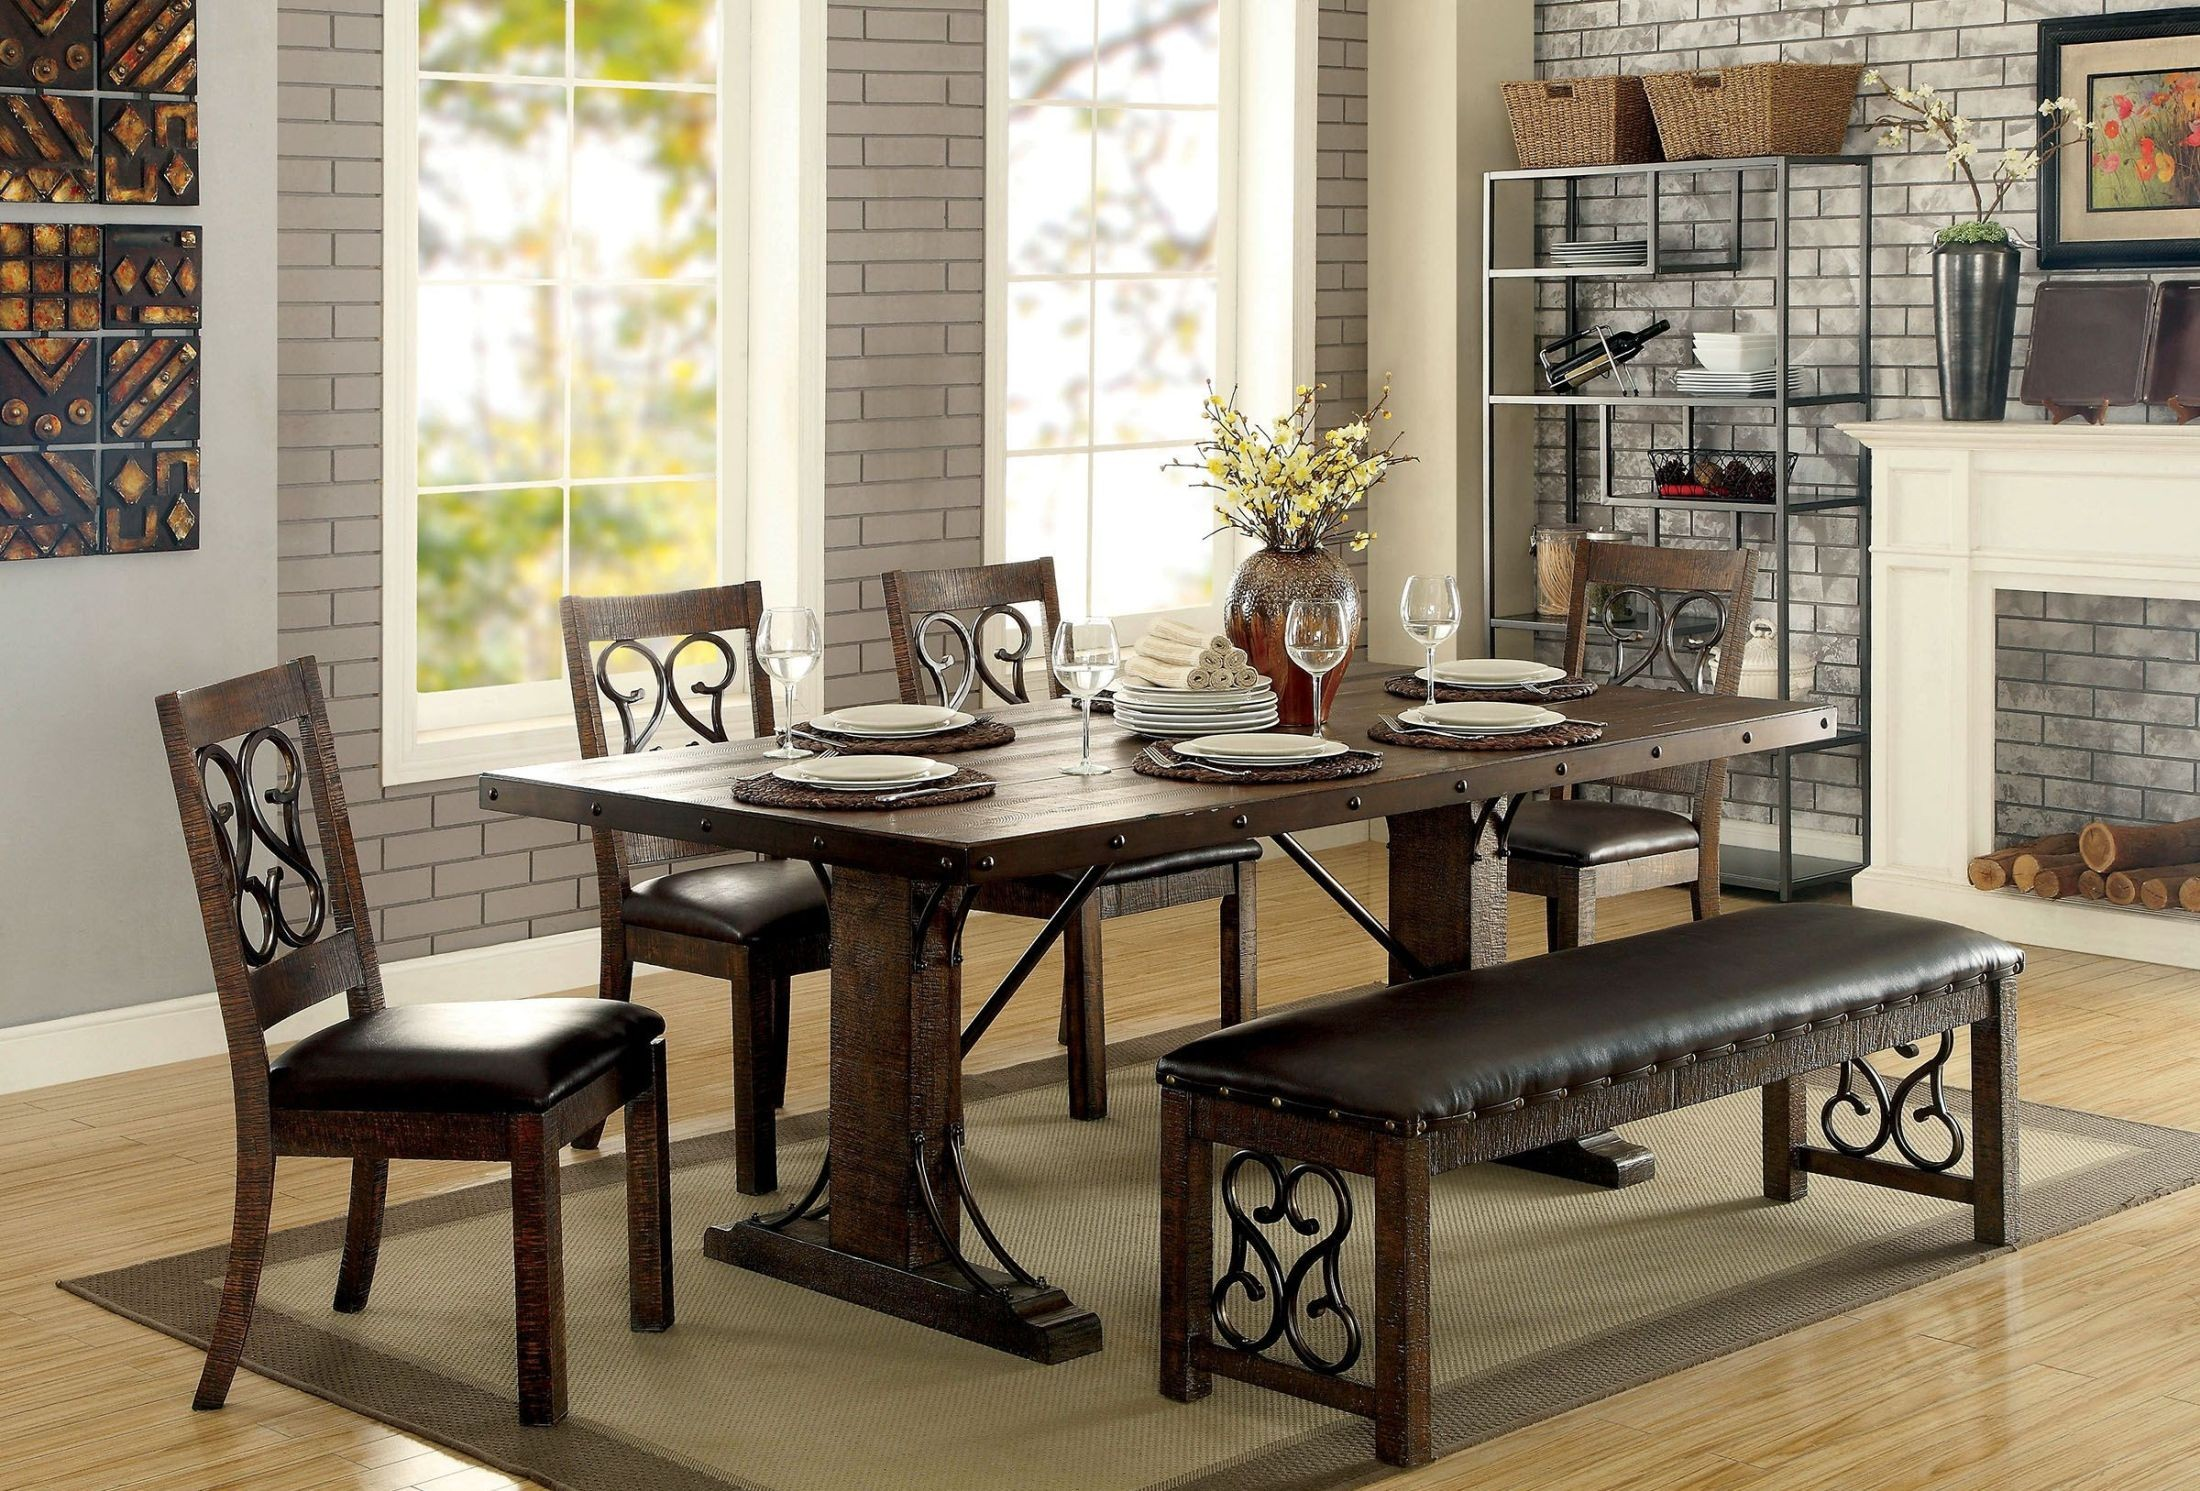 al s chairs and tables green outdoor paulina rustic walnut rectangular dining table from furniture of 2053869 2053870 2053871